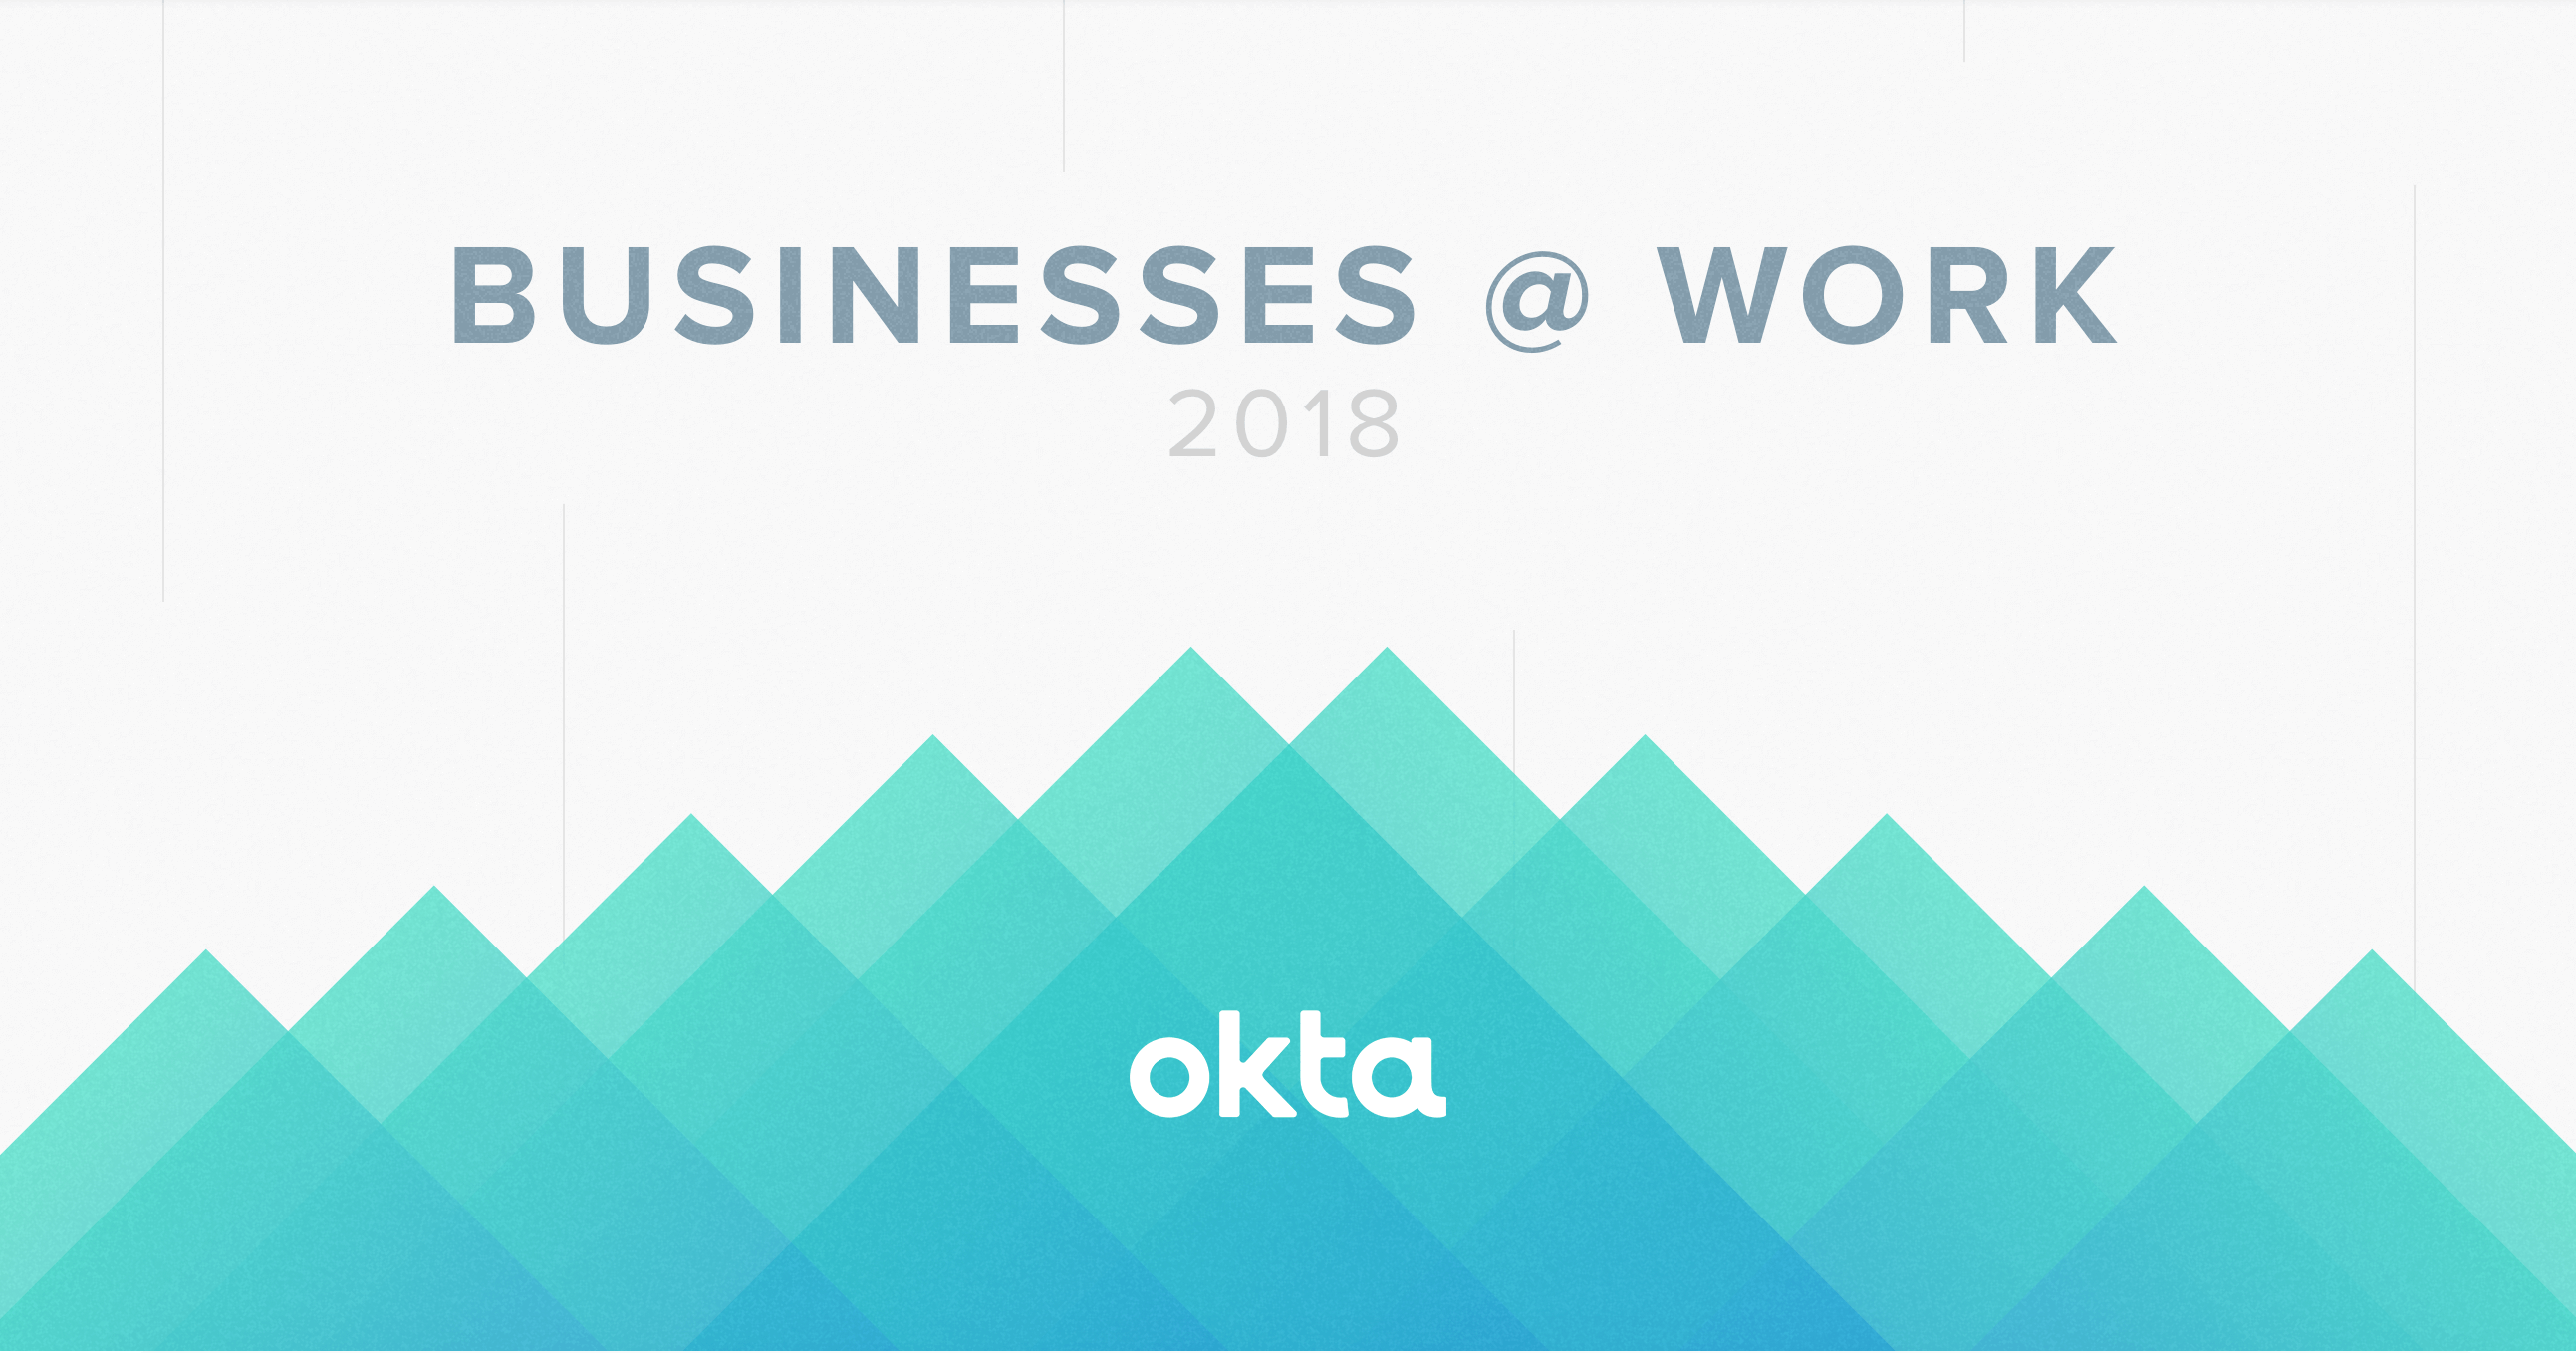 Businesses at Work 2018 | Okta